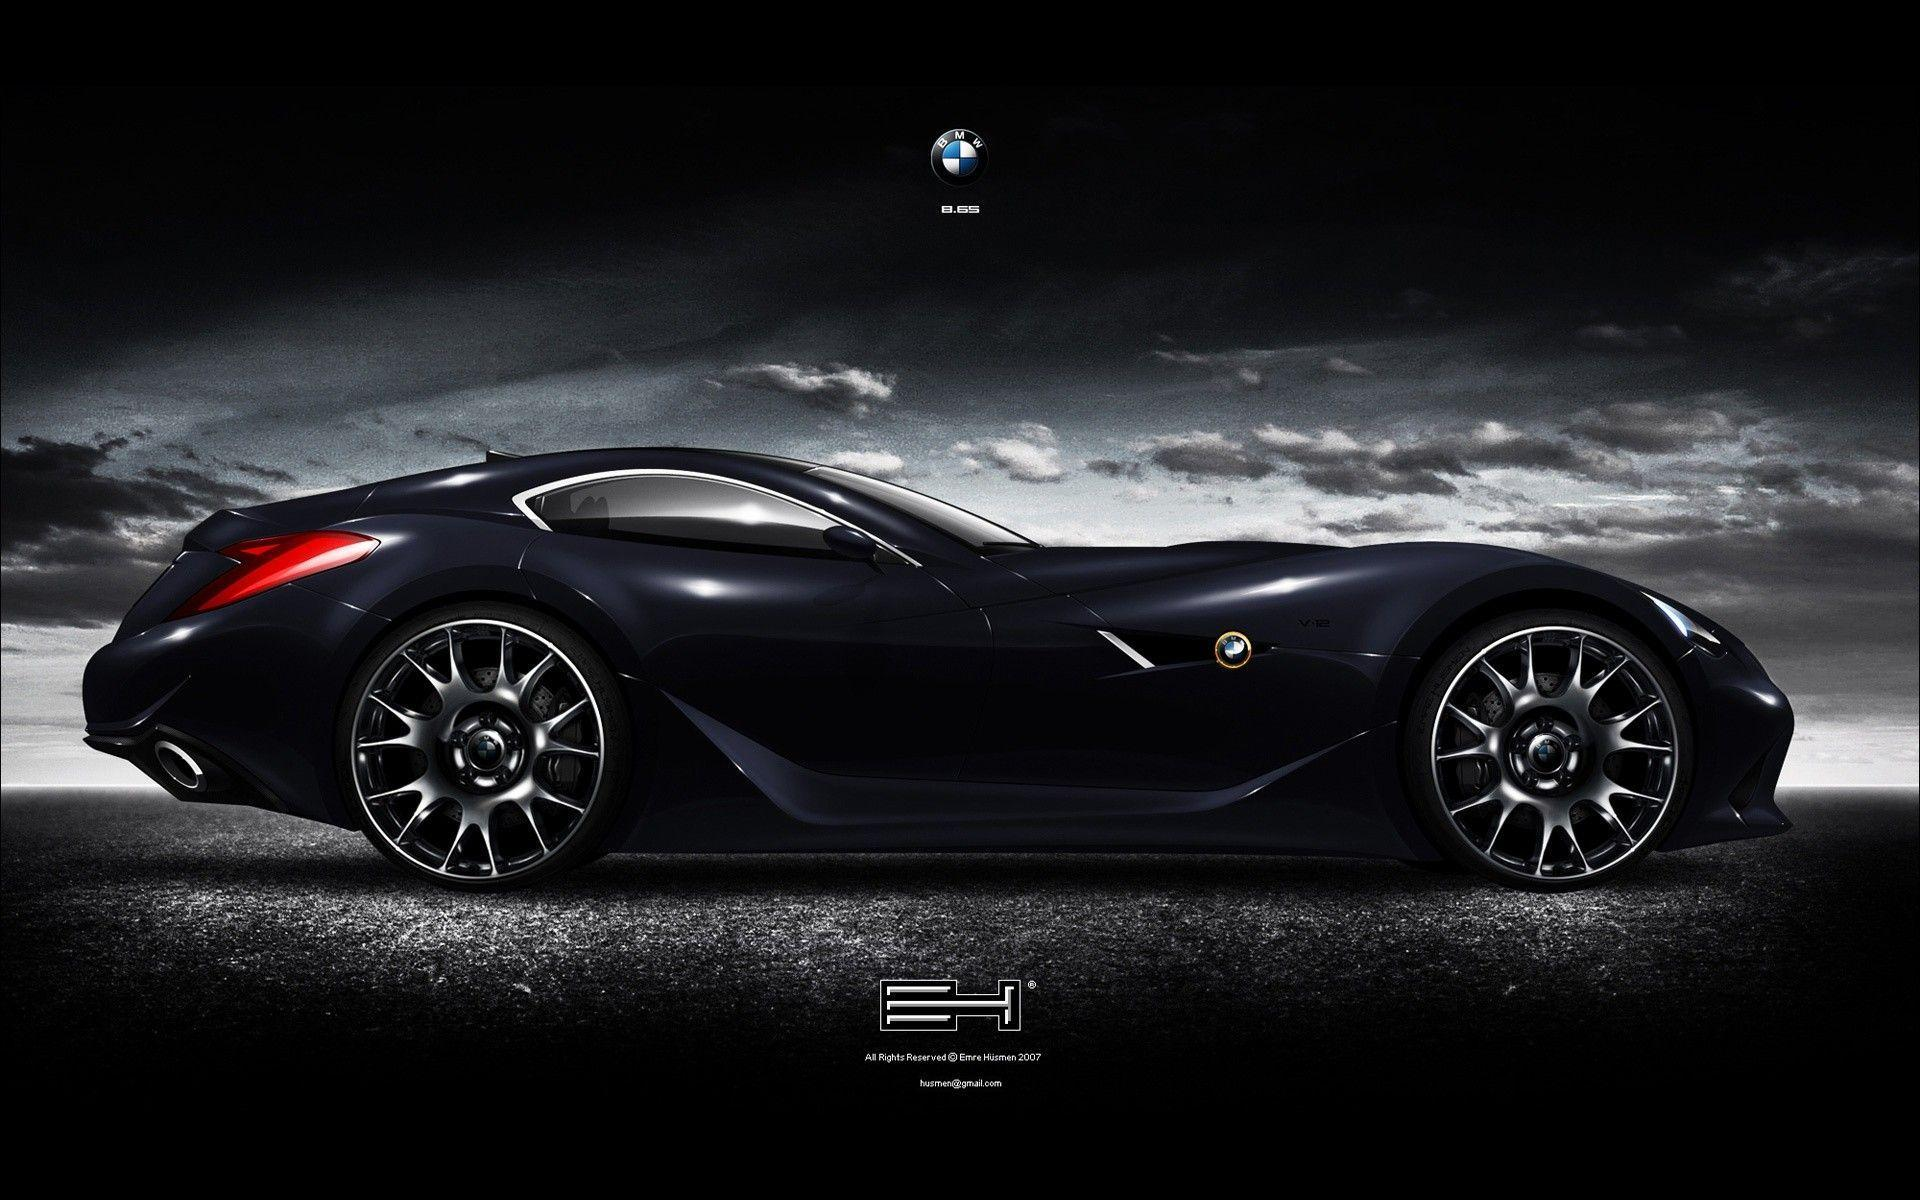 concept car hd wallpaper - photo #25